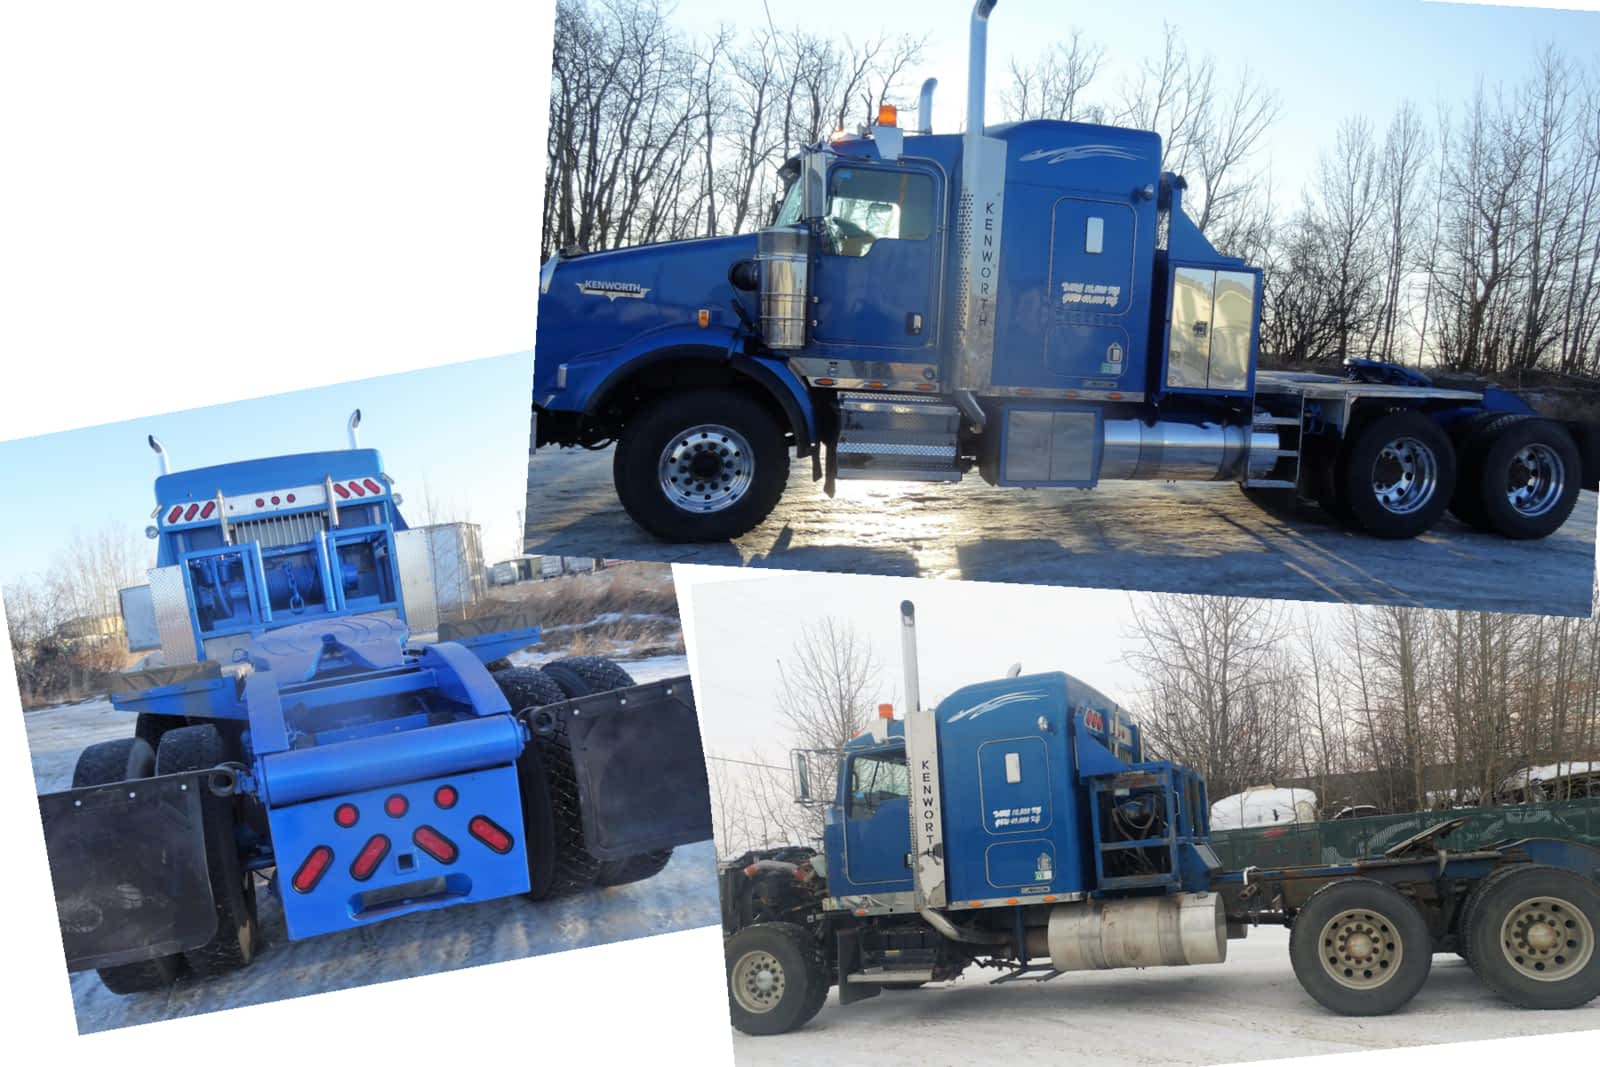 Blue truck before and after